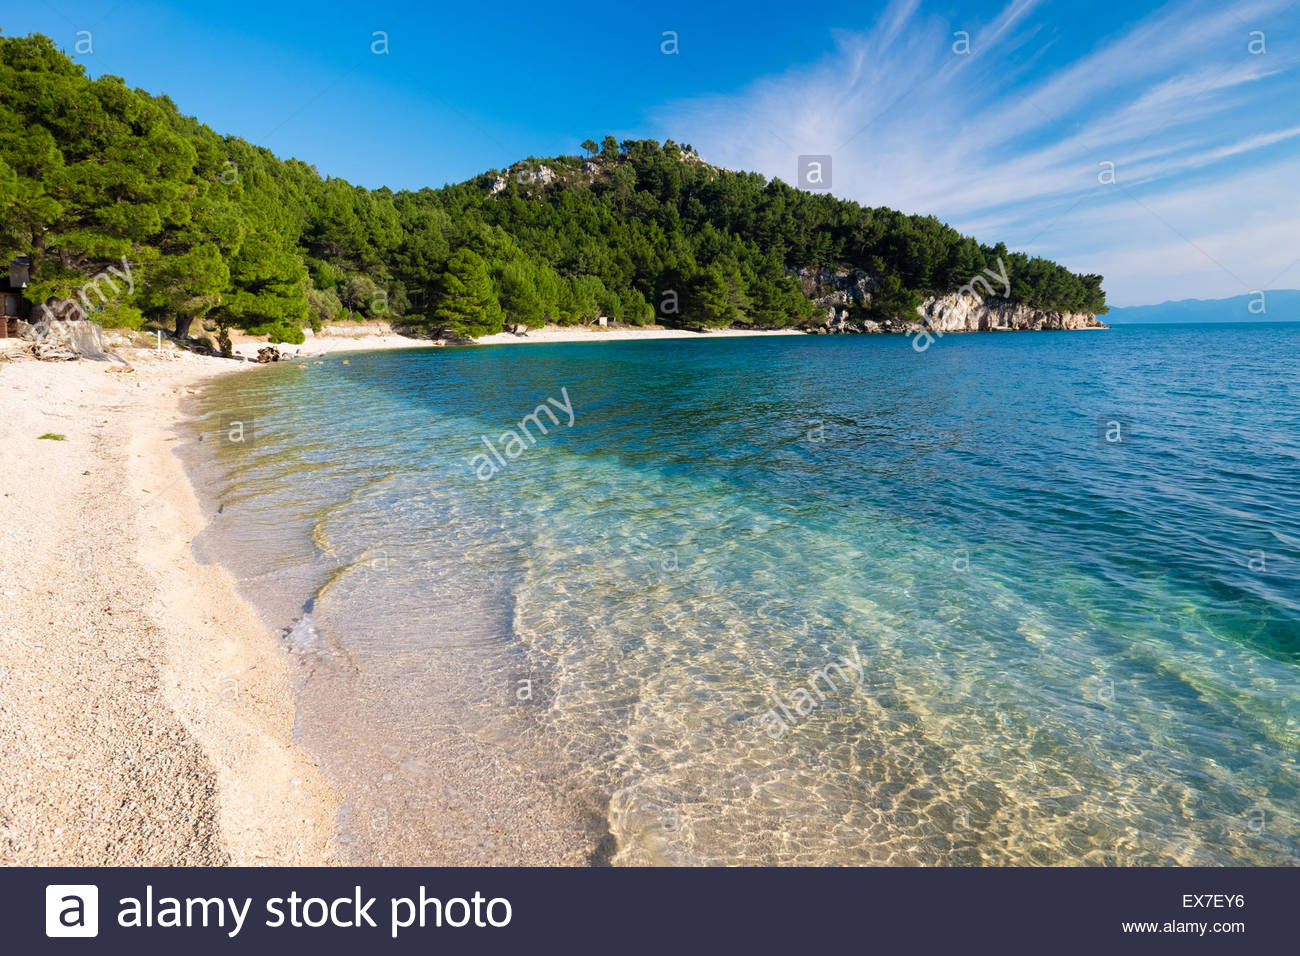 Croatia, Central Dalmatia, Baska Voda - Stock Image